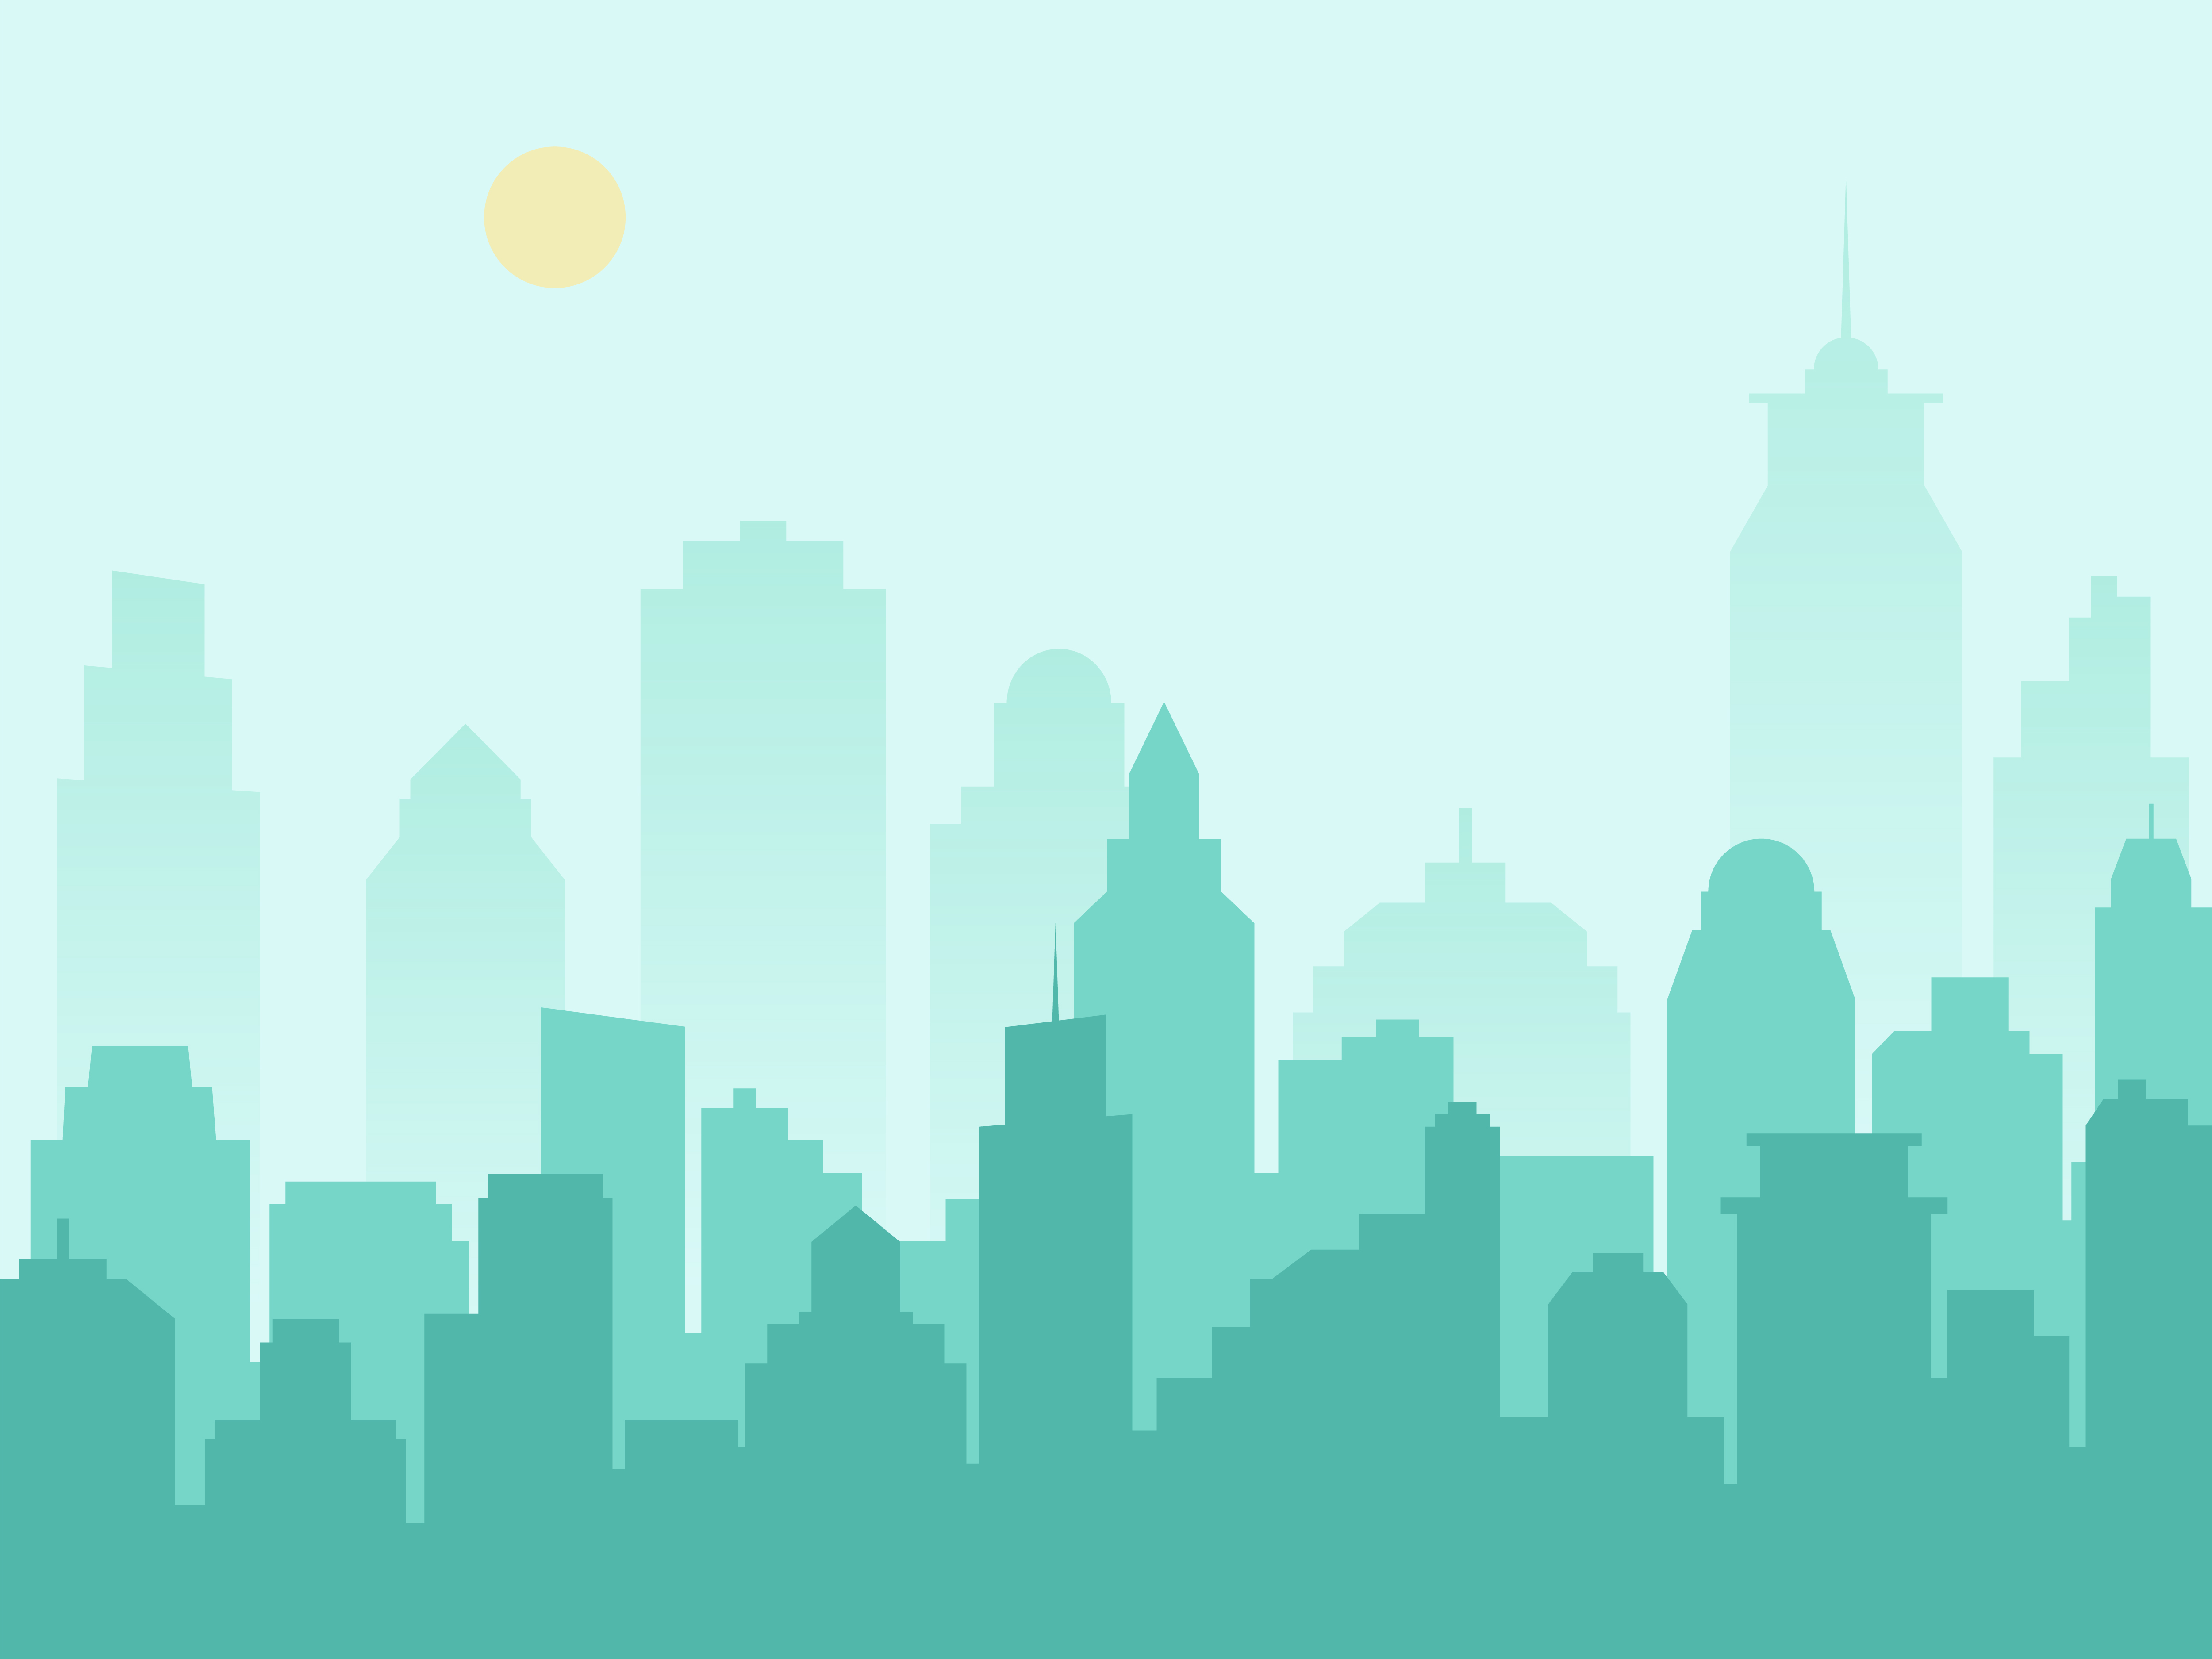 City Silhouette Cityscape And Morning Mist Download Free Vectors Clipart Graphics Vector Art Choose from 930+ city silhouette graphic resources and download in the form of png, eps, ai or psd. city silhouette cityscape and morning mist download free vectors clipart graphics vector art